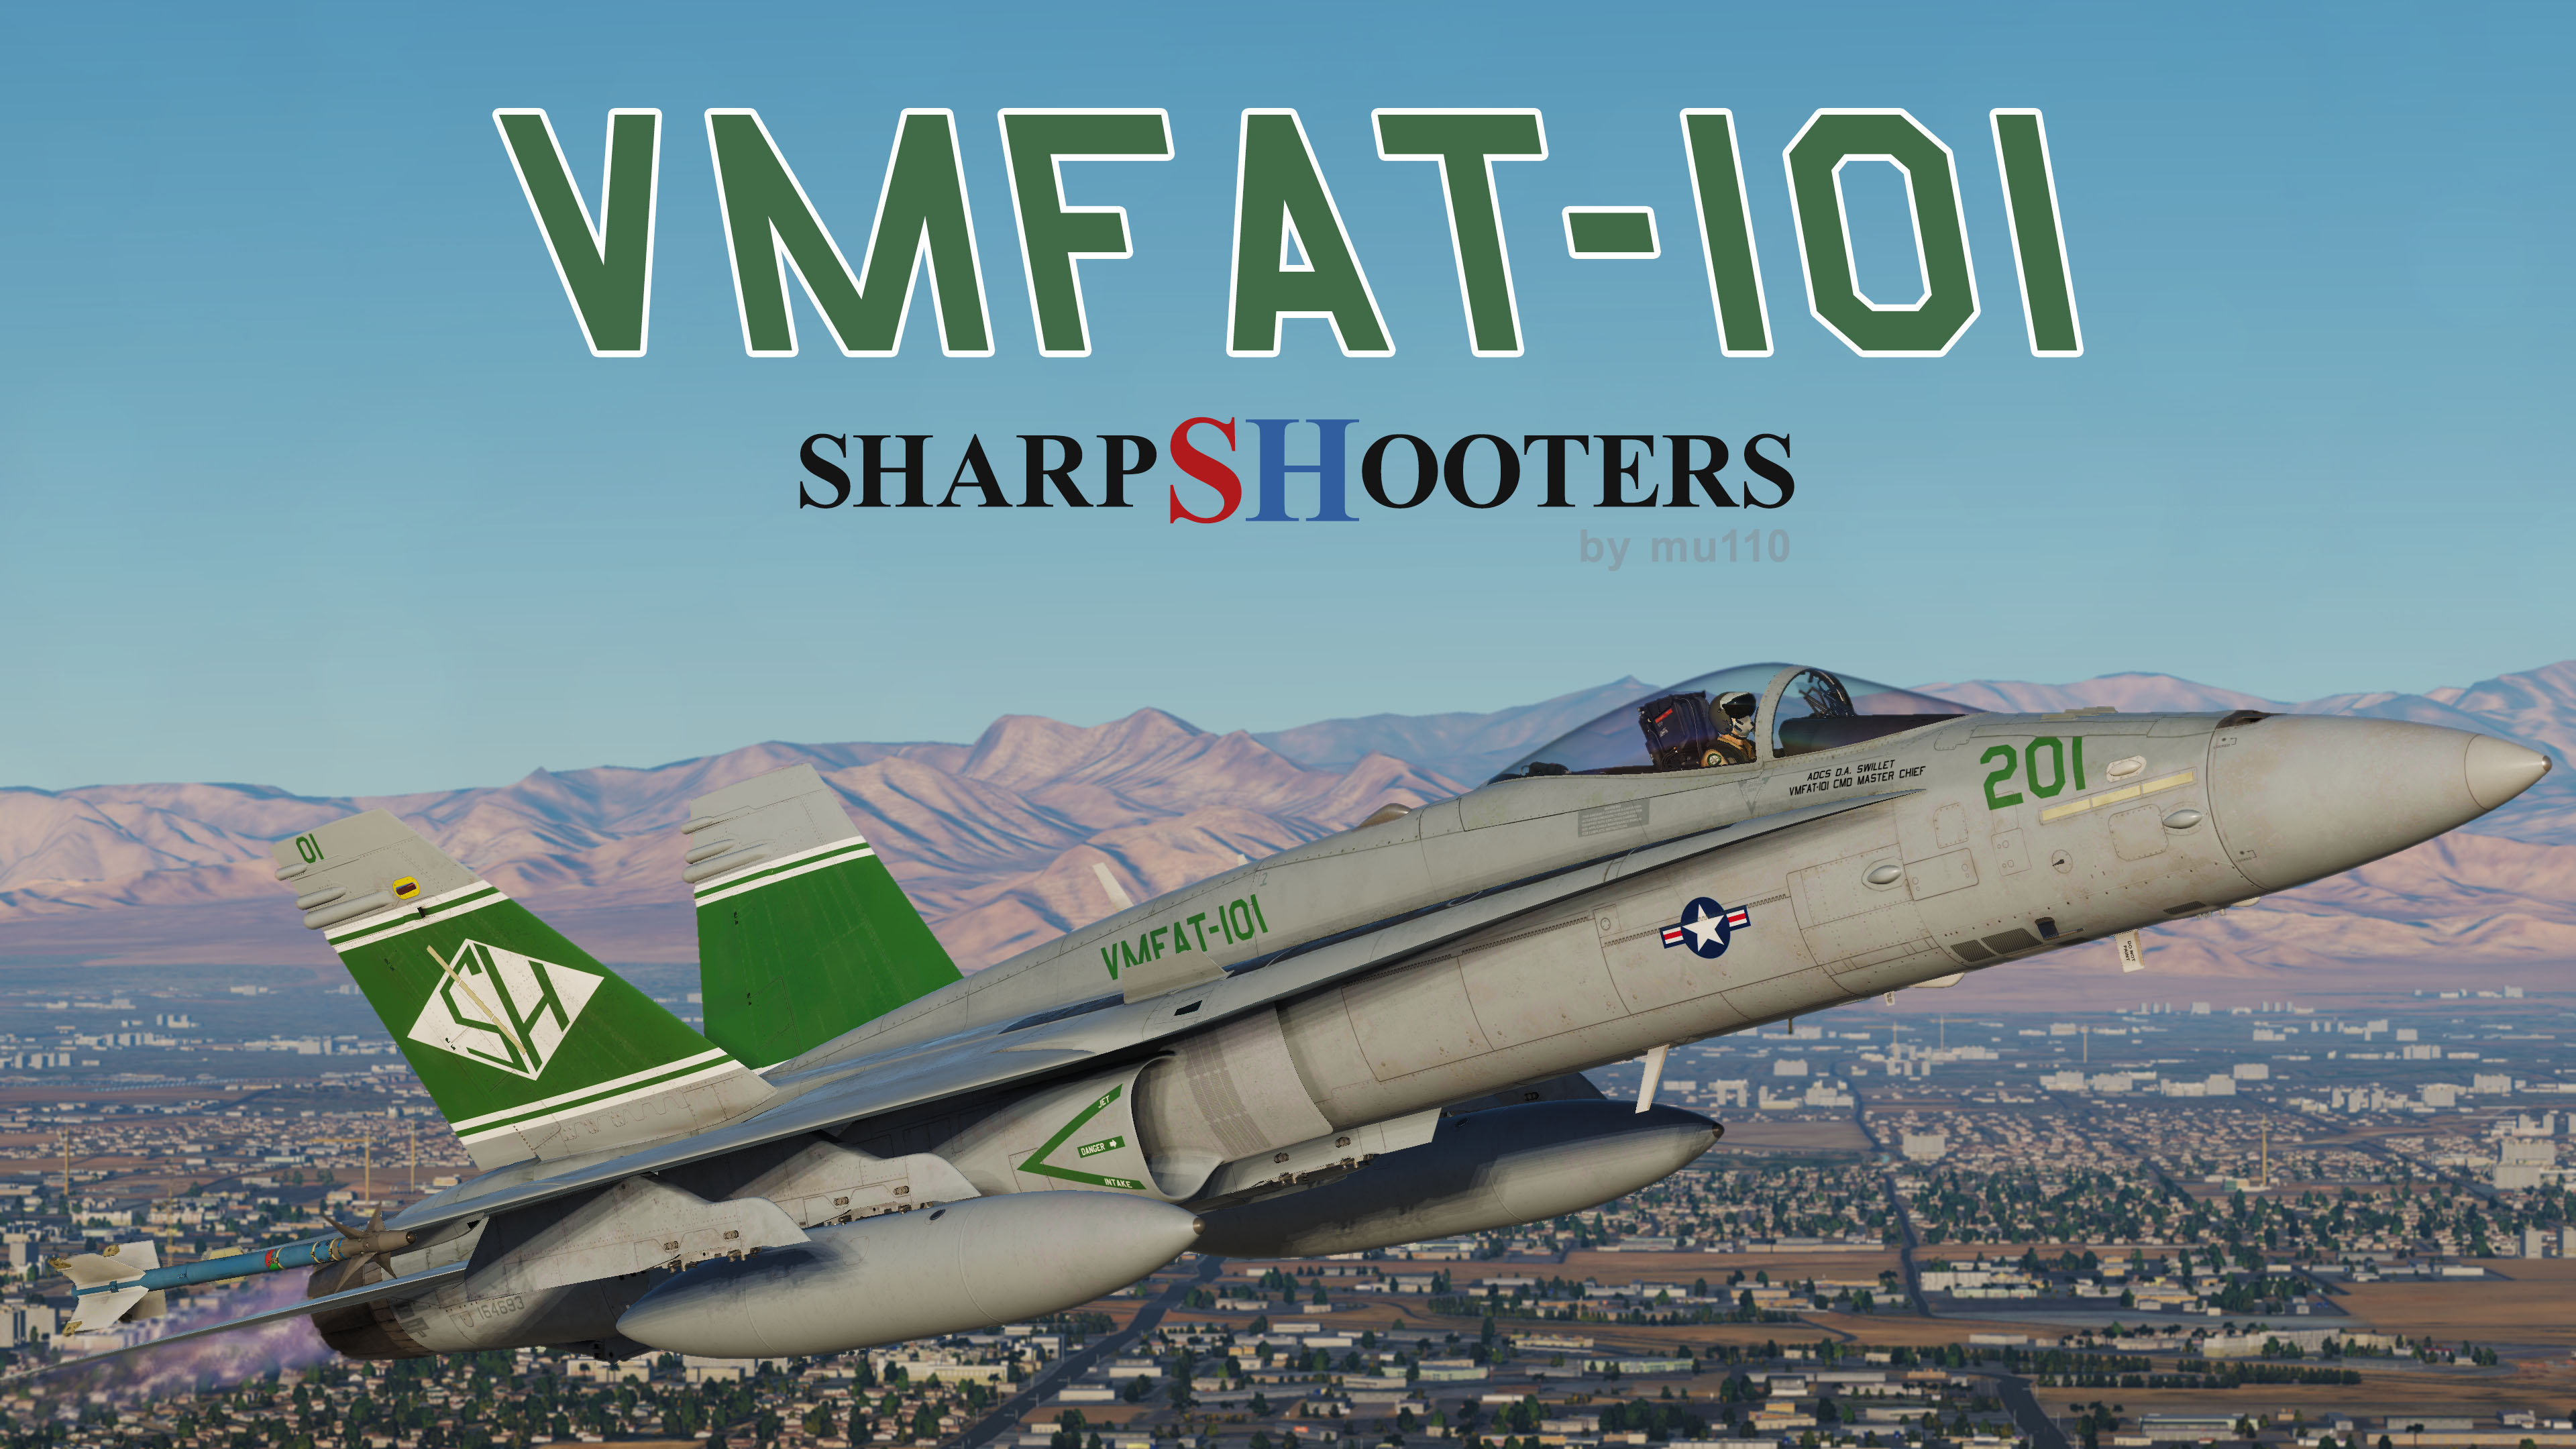 VMFAT-101 Liveries for the F/A-18C!